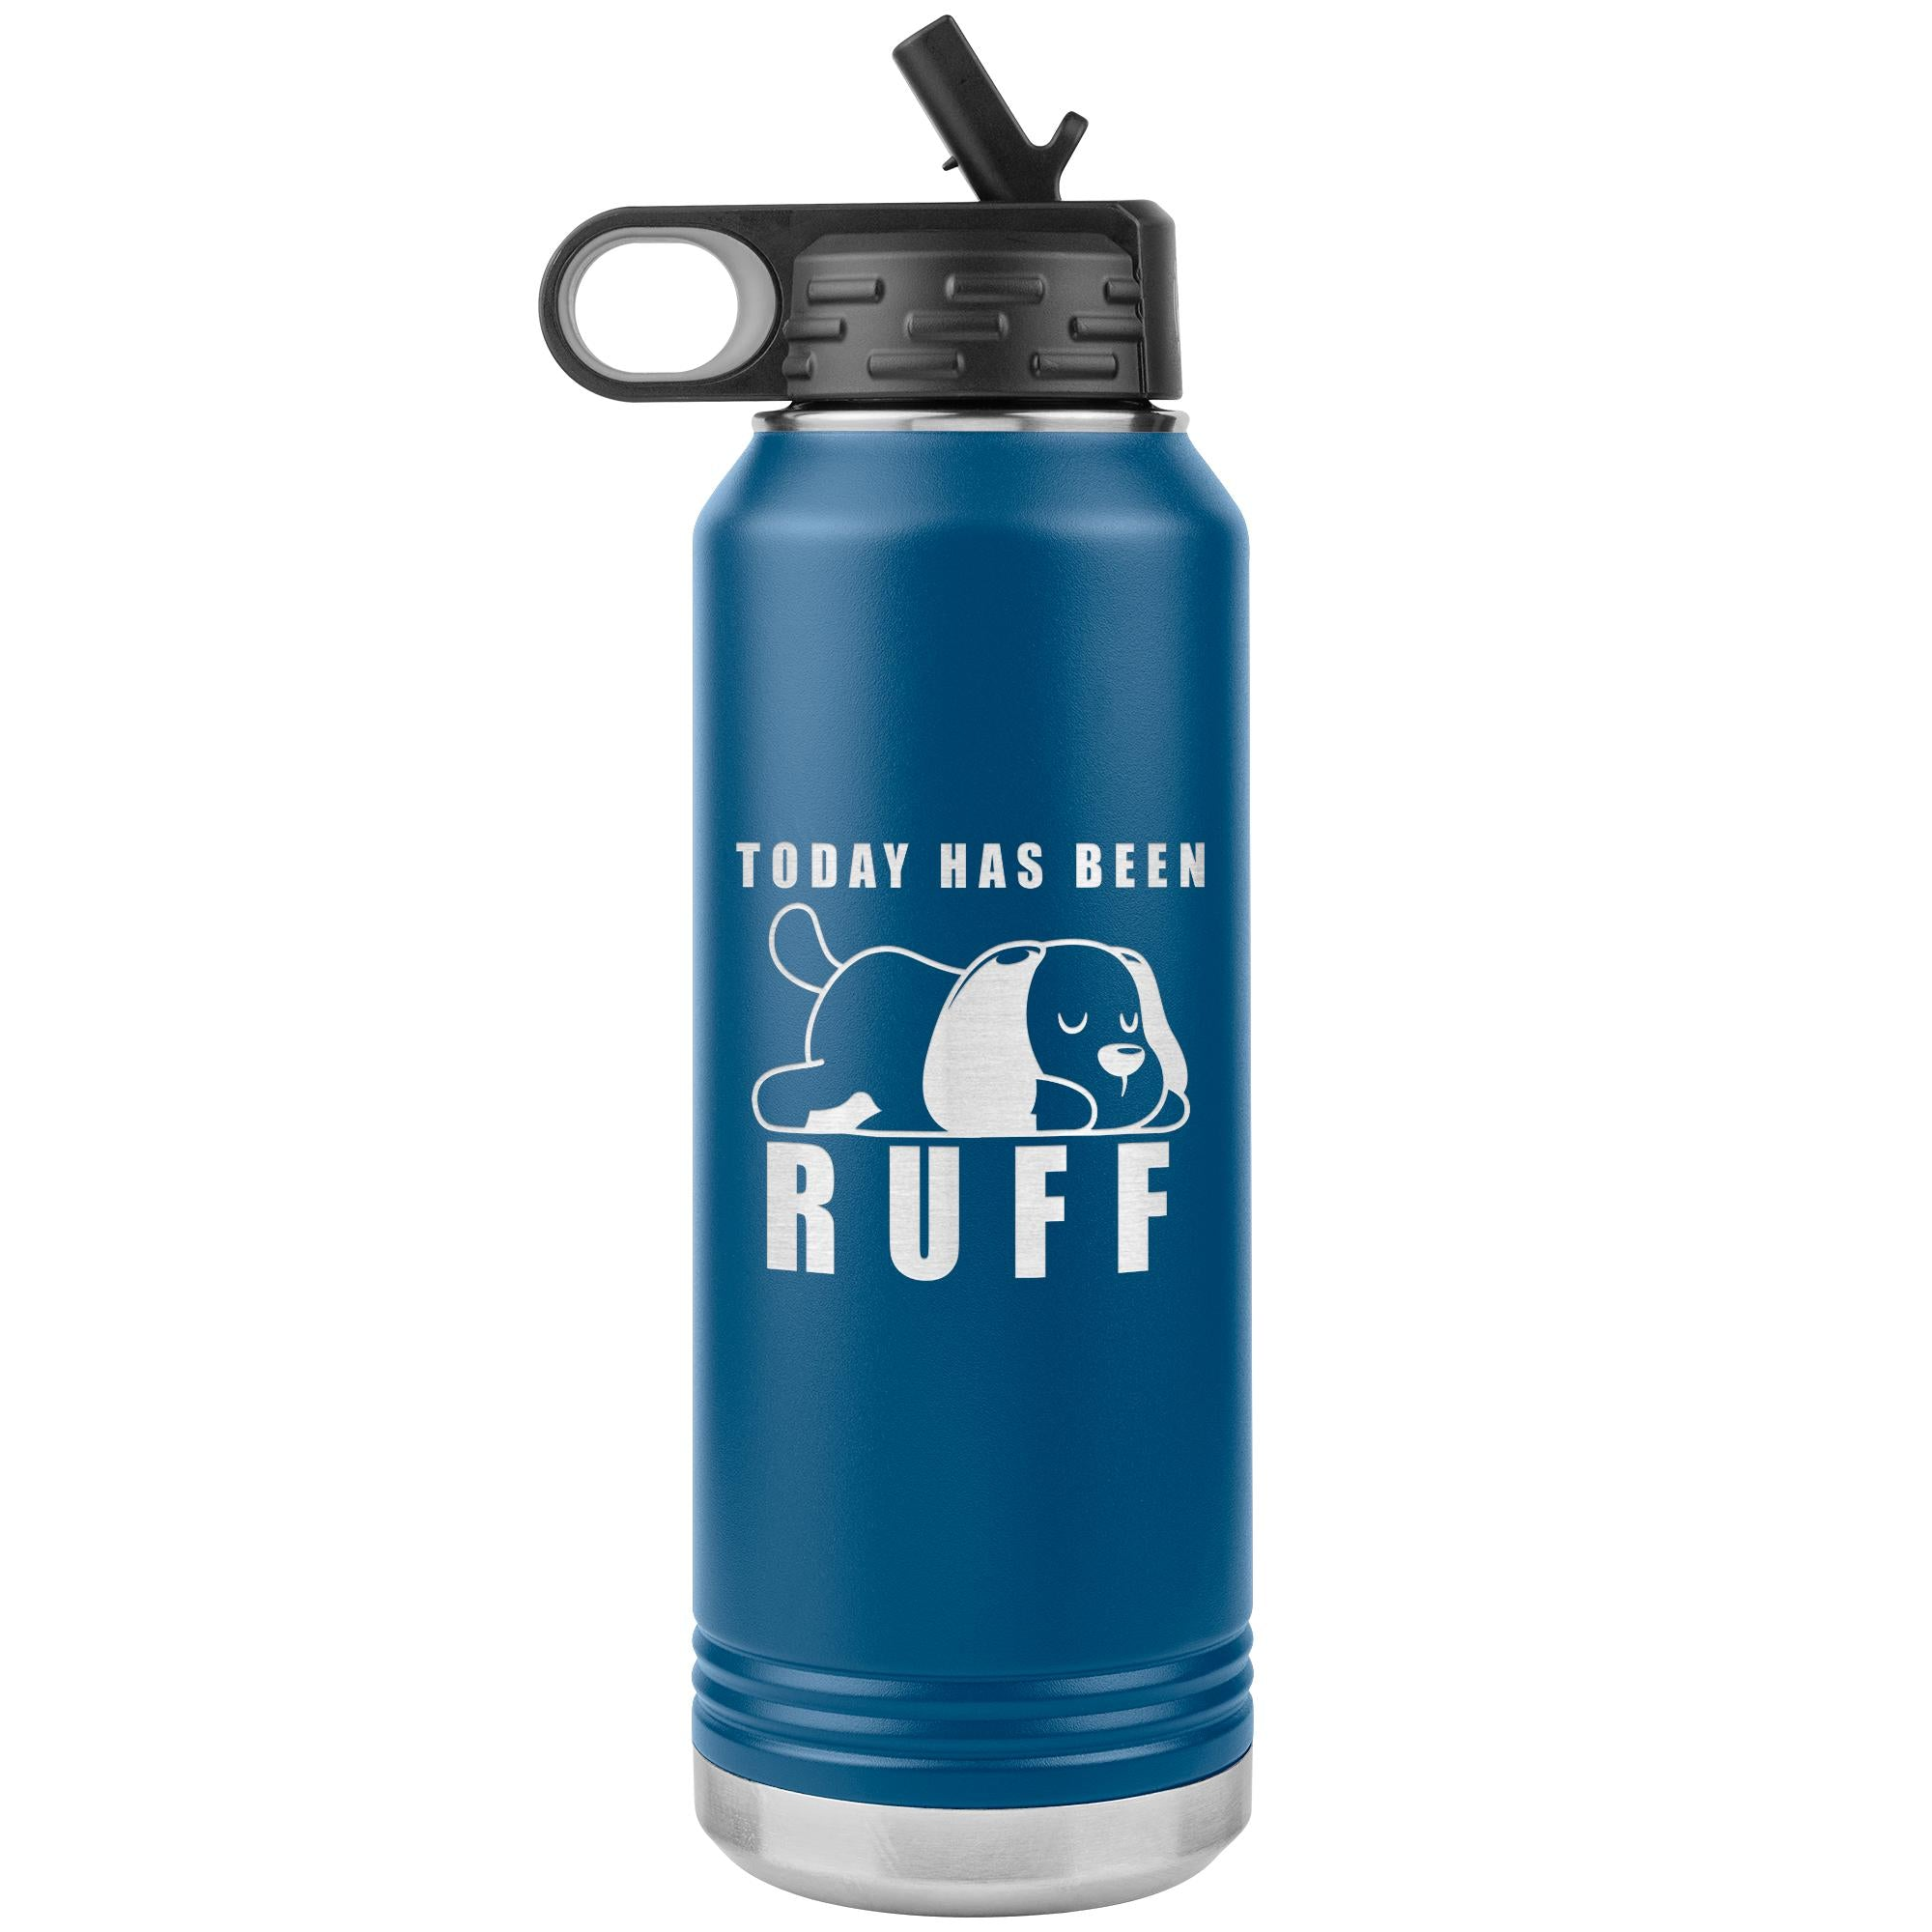 Today has been ruff Water Bottle Tumbler 32 oz-Tumblers-I love Veterinary